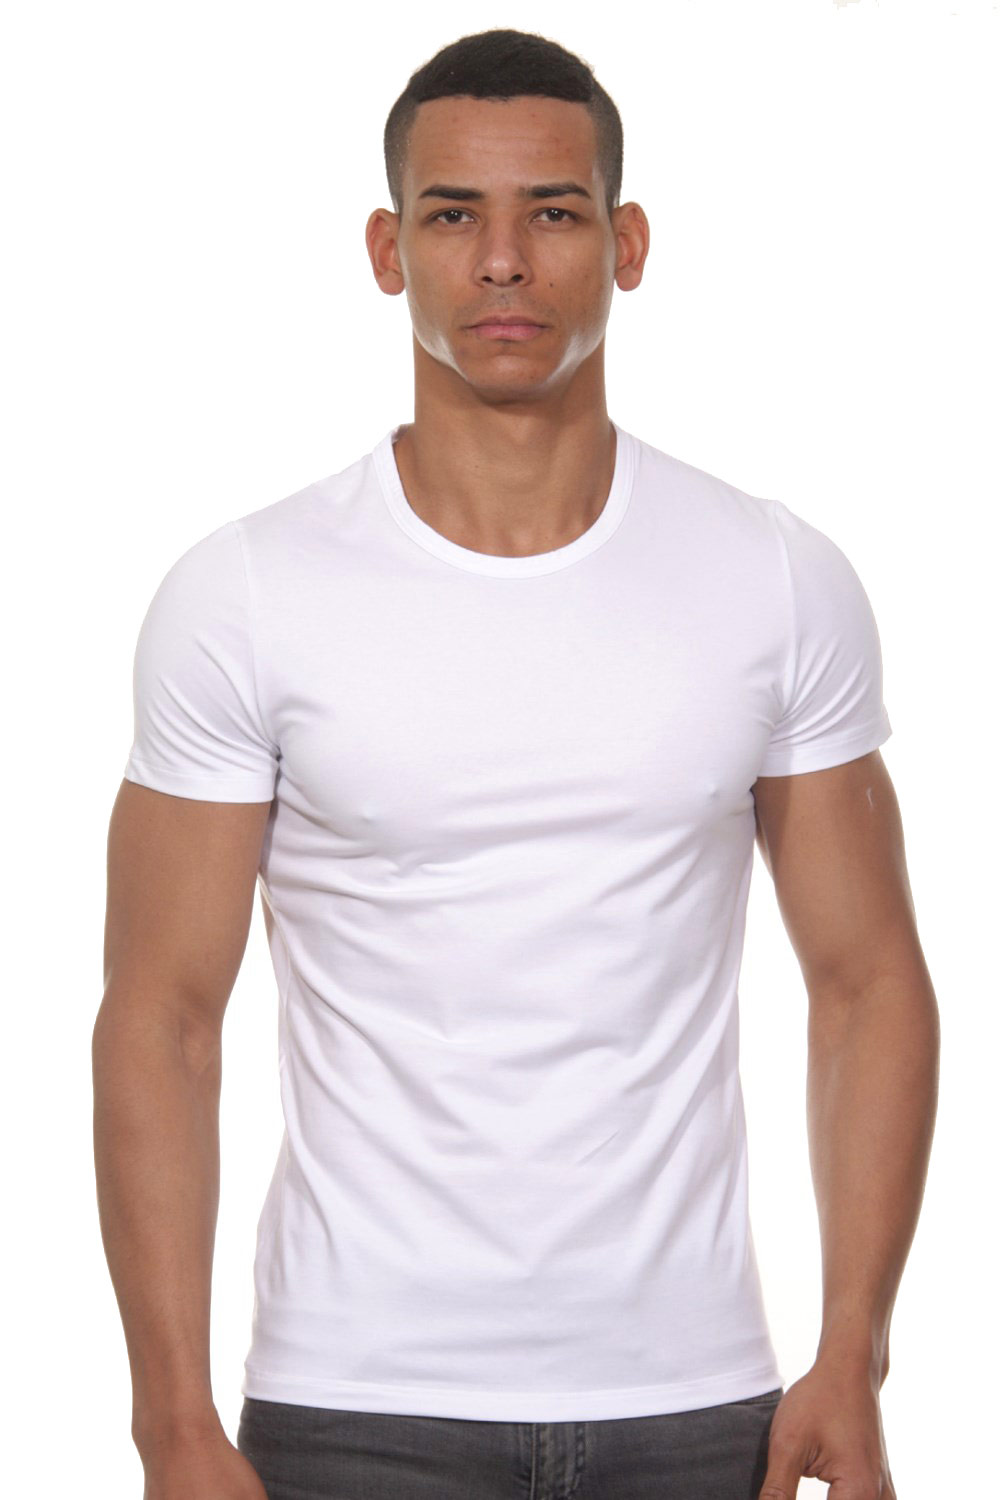 HOM Classic Tee-shirt Crew Neck at oboy.com